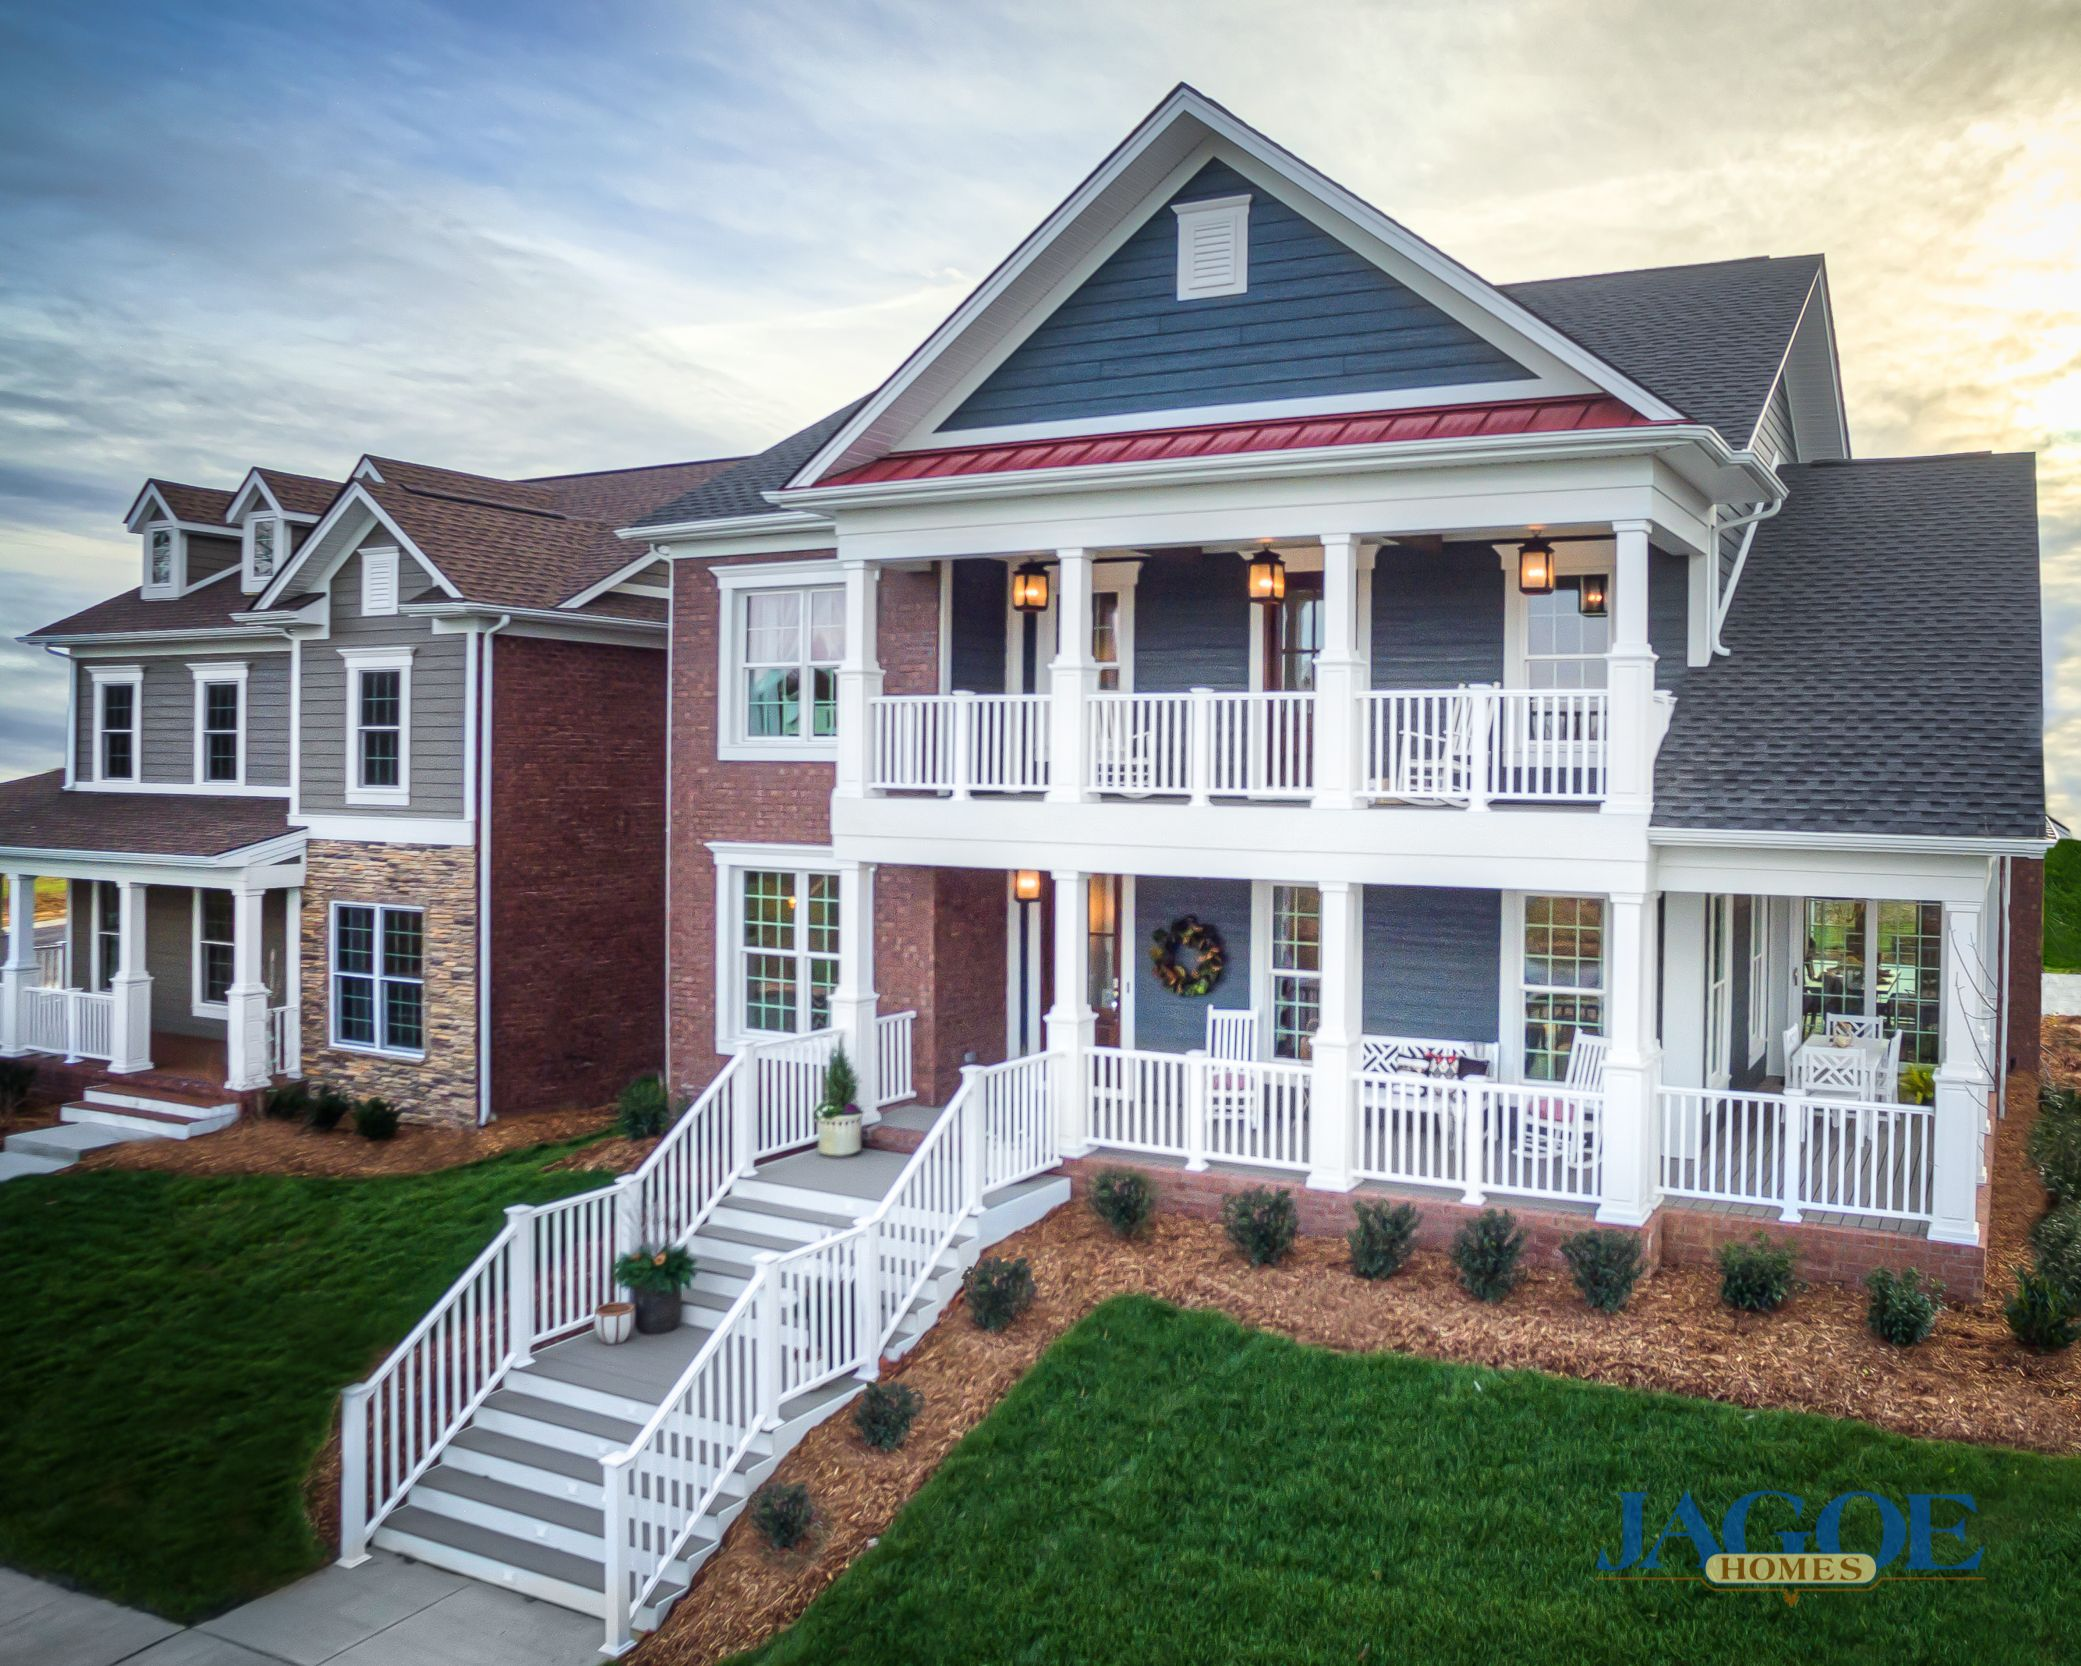 Pinot A Elevation Exterior 4200 Owensboro Ky House Styles Mansions Gazebo